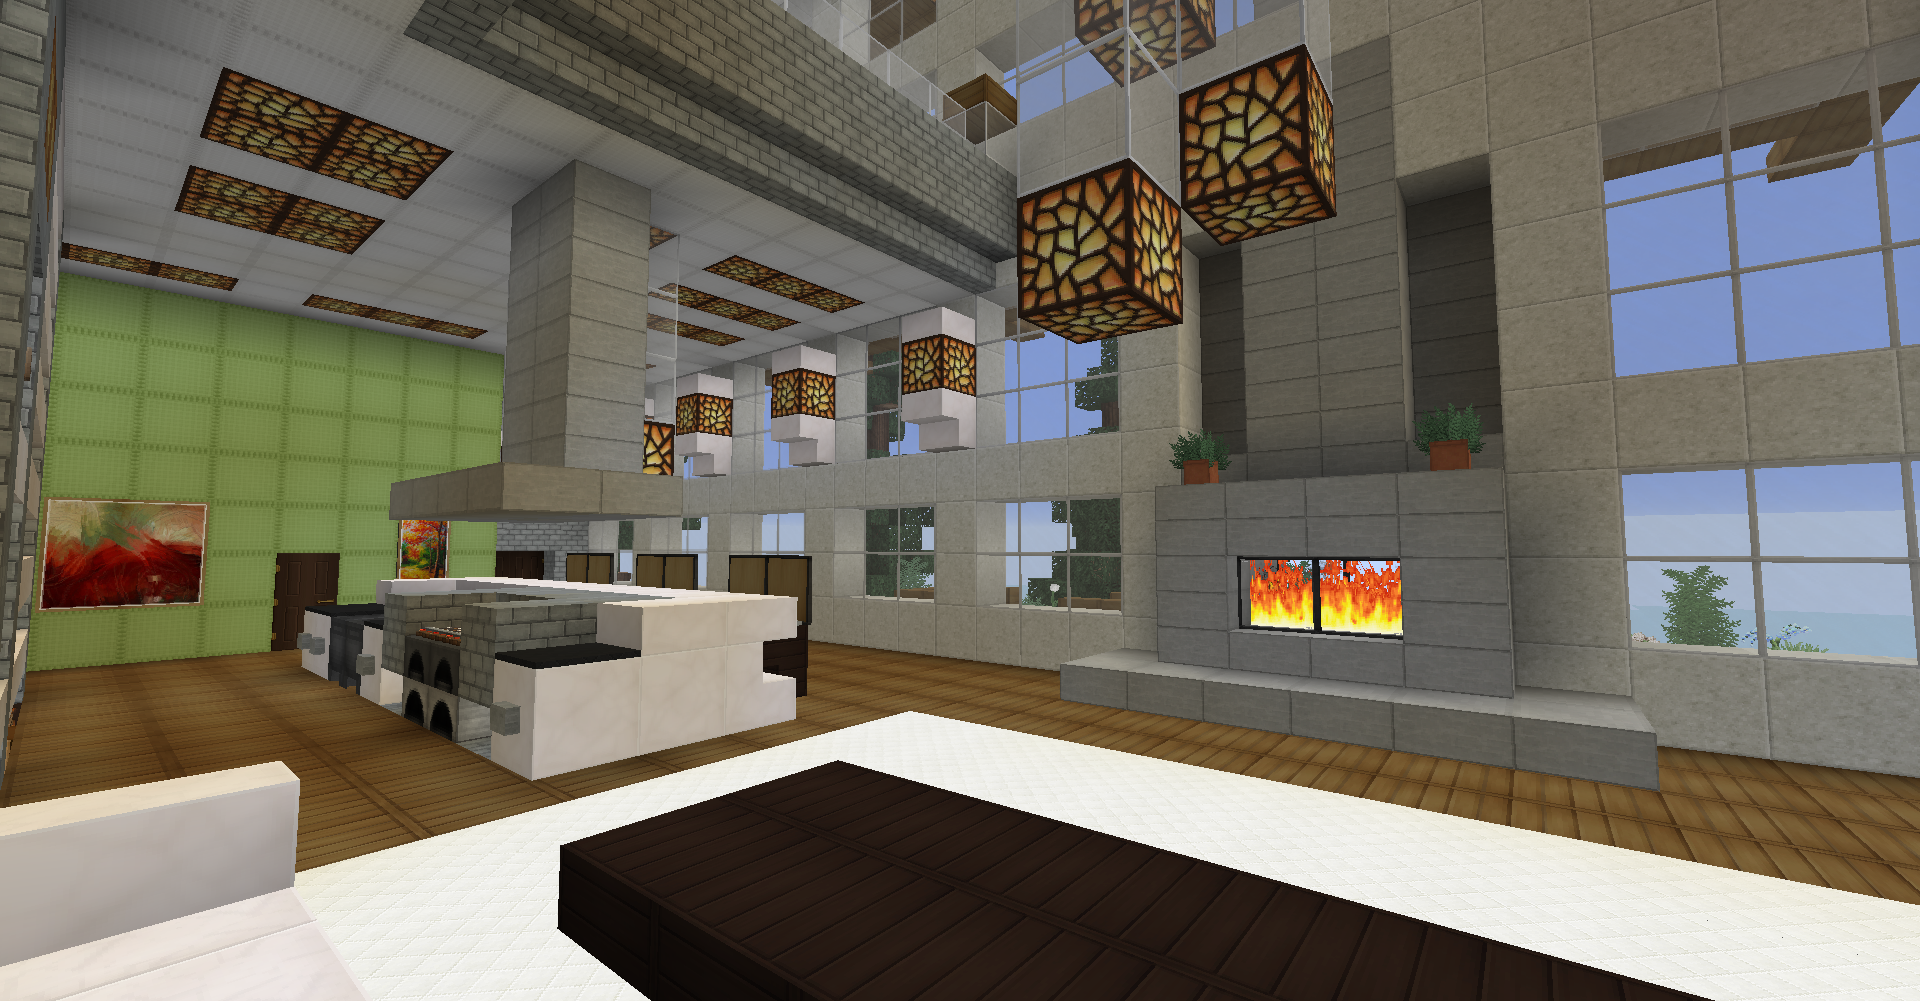 Minecraft Survival Modern House Interior Living Room Kitchen Two Way Fireplace Large Windows Modern House Minecraft Modern Home Minecraft House Tutorials